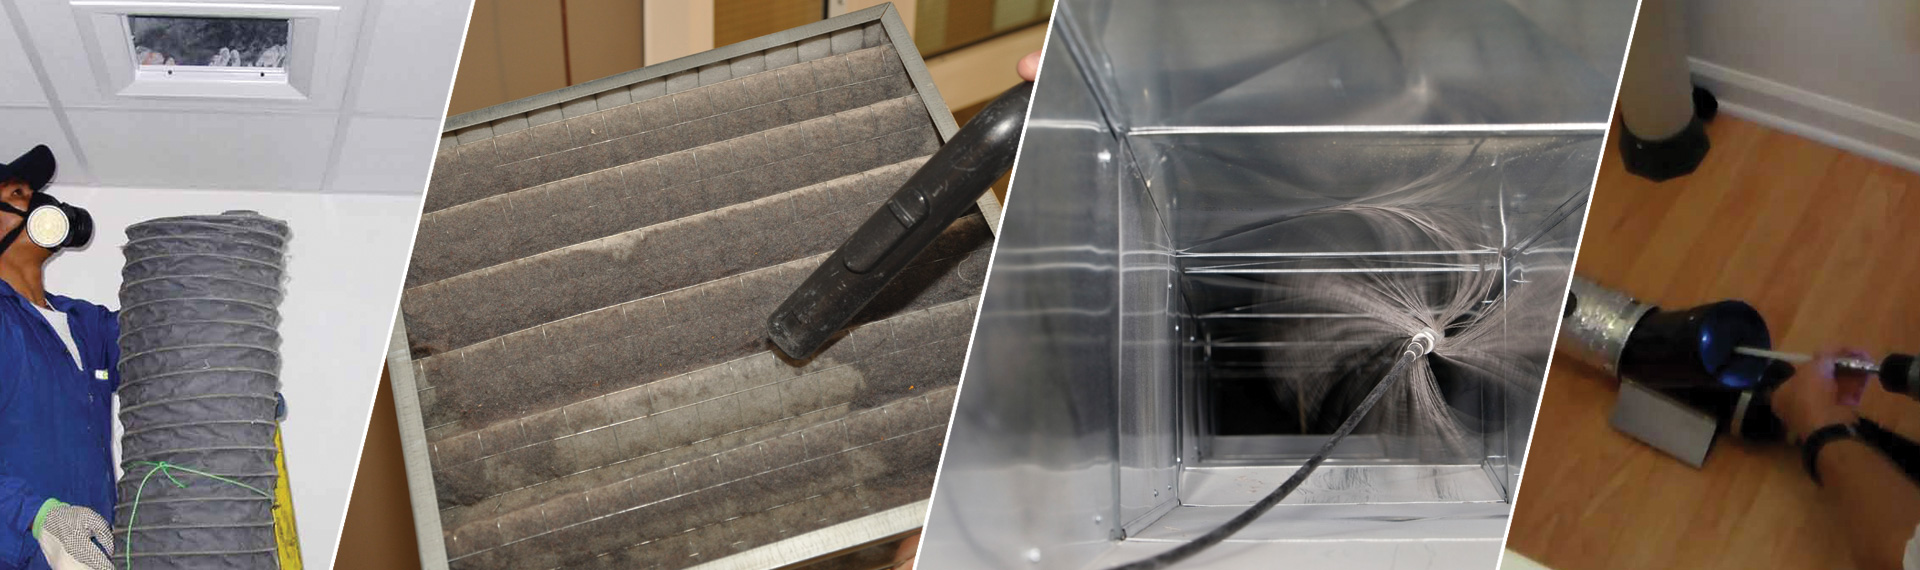 Reliable Air Duct Cleaning Malibu CA